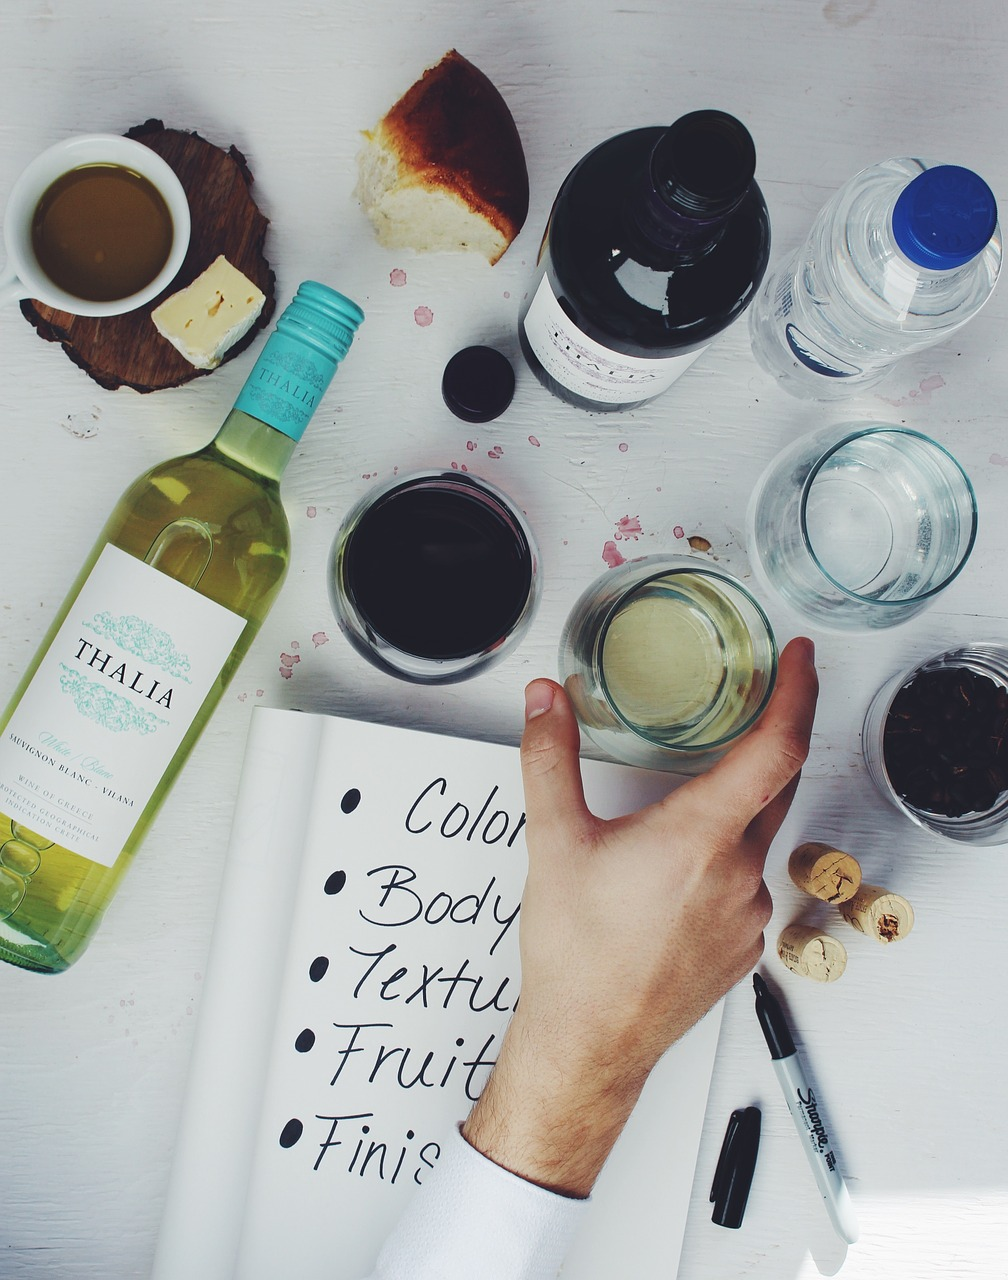 Wine tasting guide with notebook